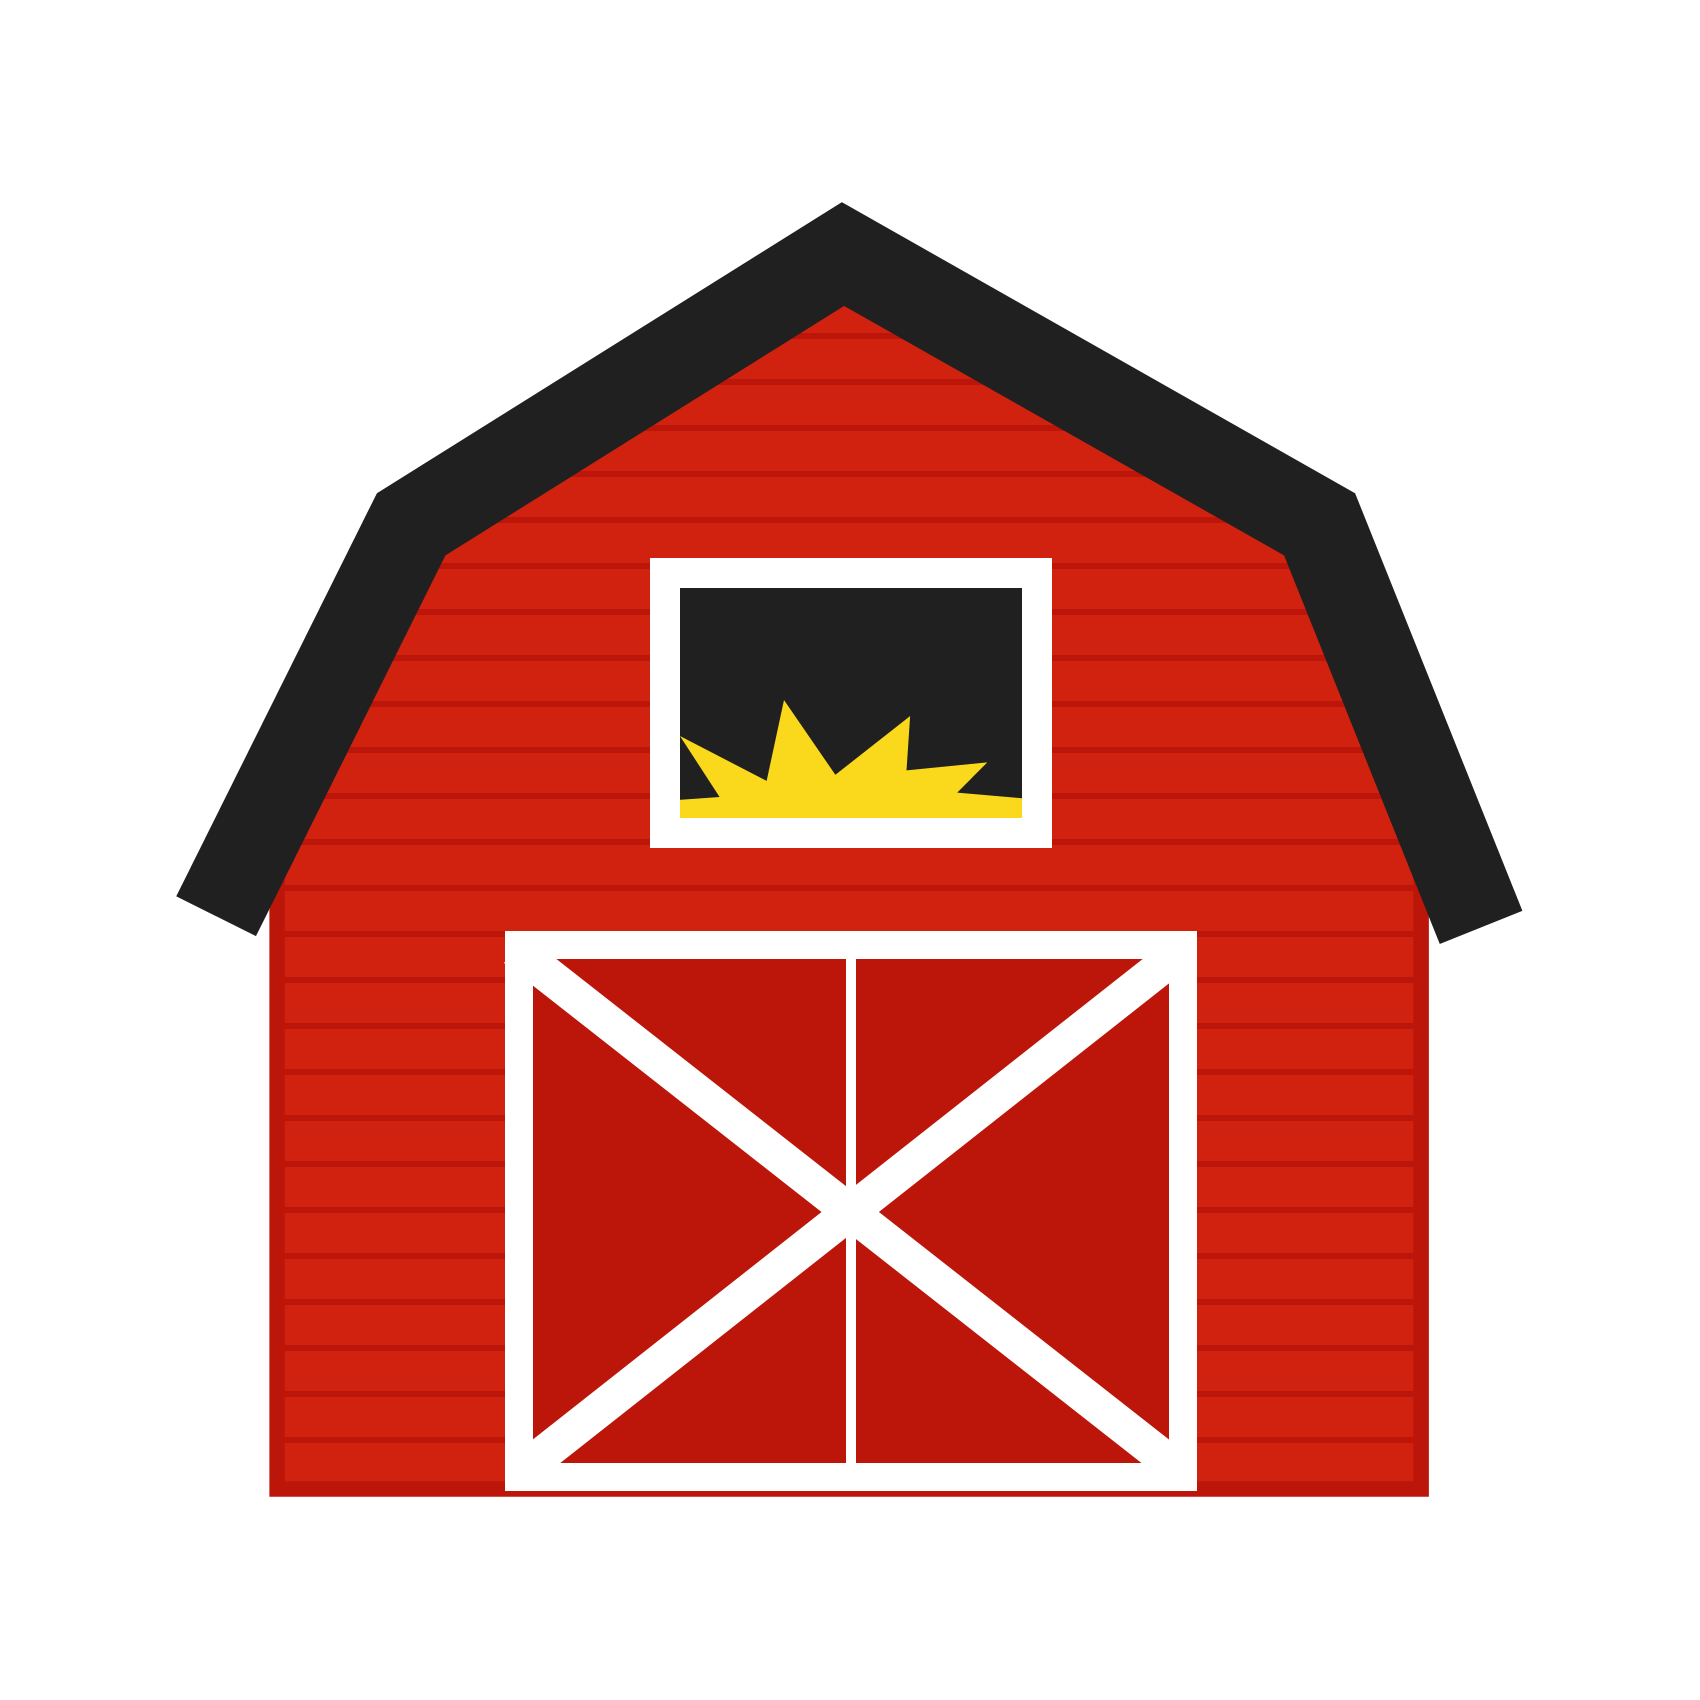 Barn clipart vector. Farm house clip art